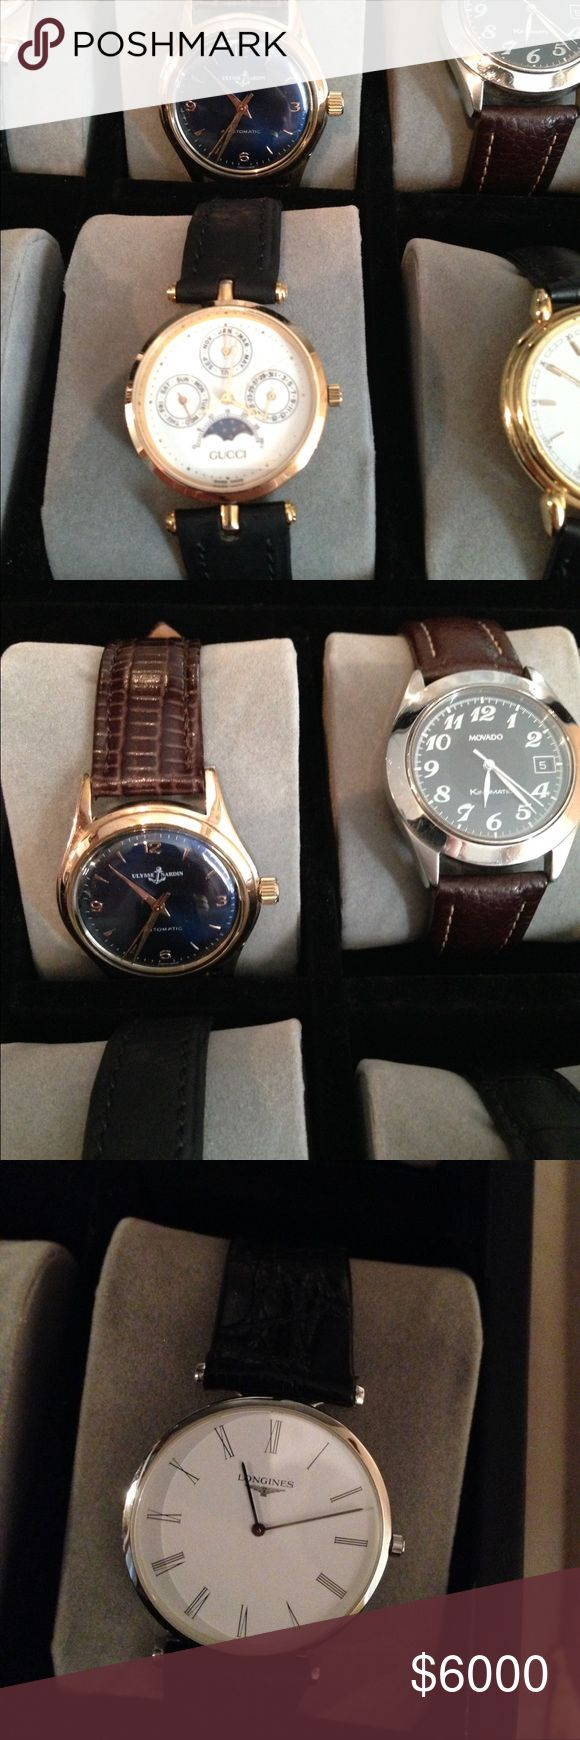 Authentic Iwc,Ulysses nardin,longines , movado! A selection of exquisite watches all authentic please let me know which one you are interested in and I can give you a price! Accessories Watches